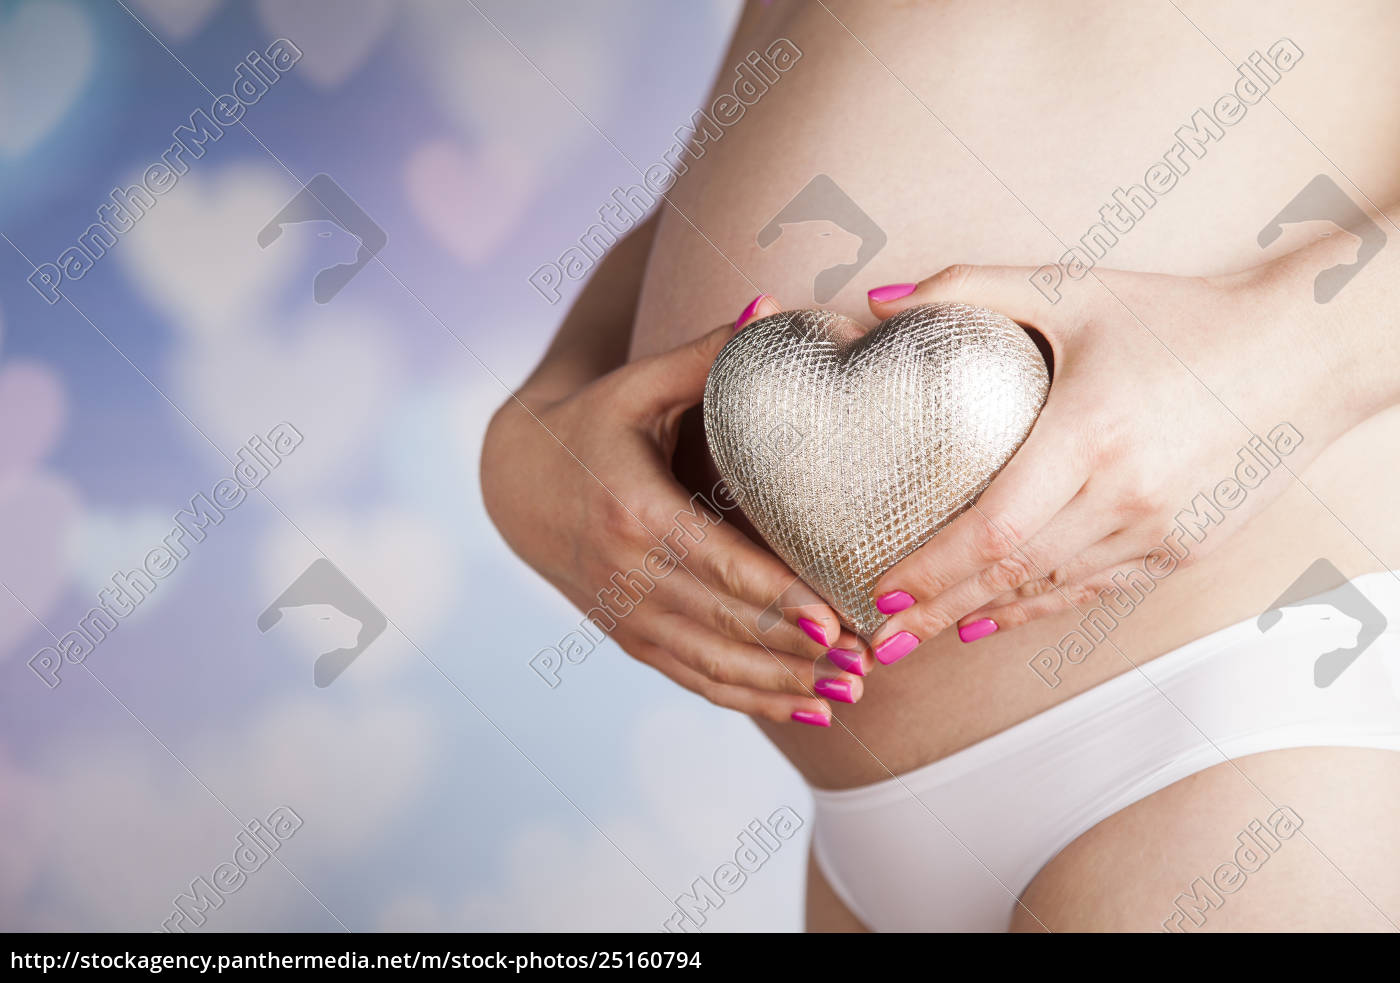 pregnant, woman, loving, heart, her, baby - 25160794